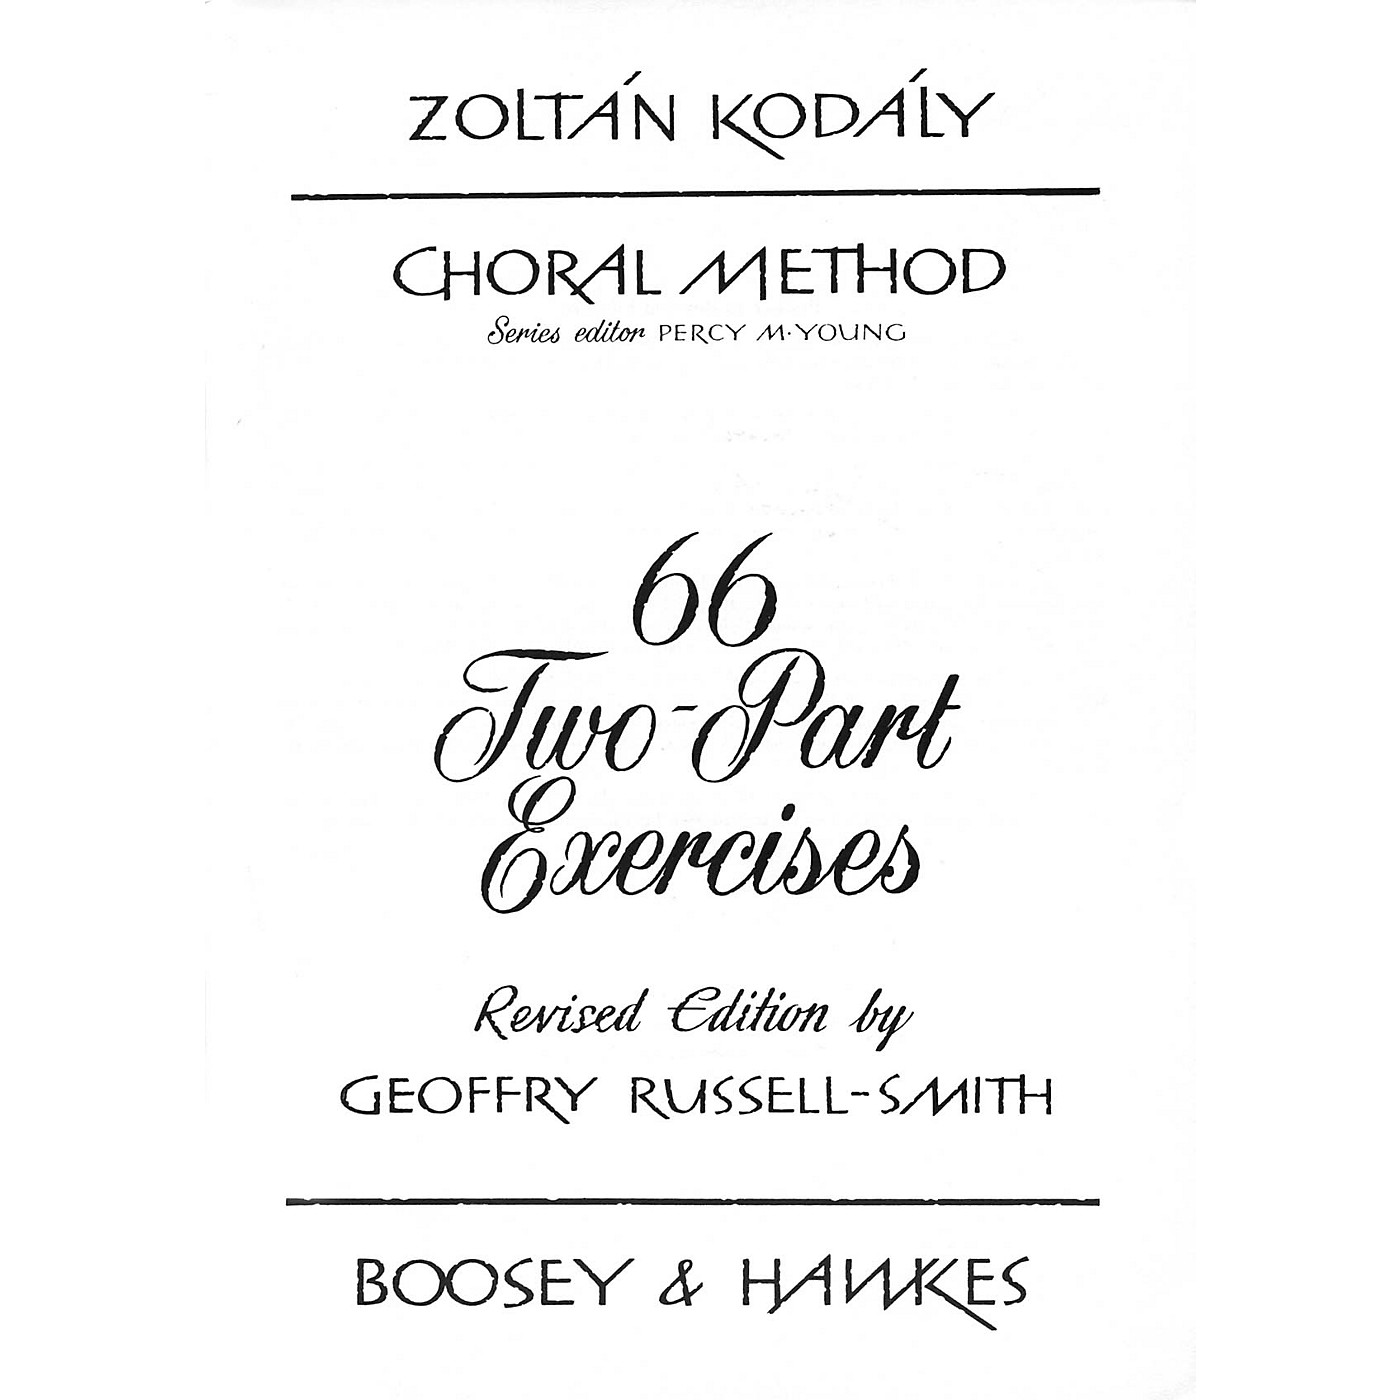 Boosey and Hawkes 66 Two-Part Exercises 2-Part Composed by Zoltán Kodály thumbnail